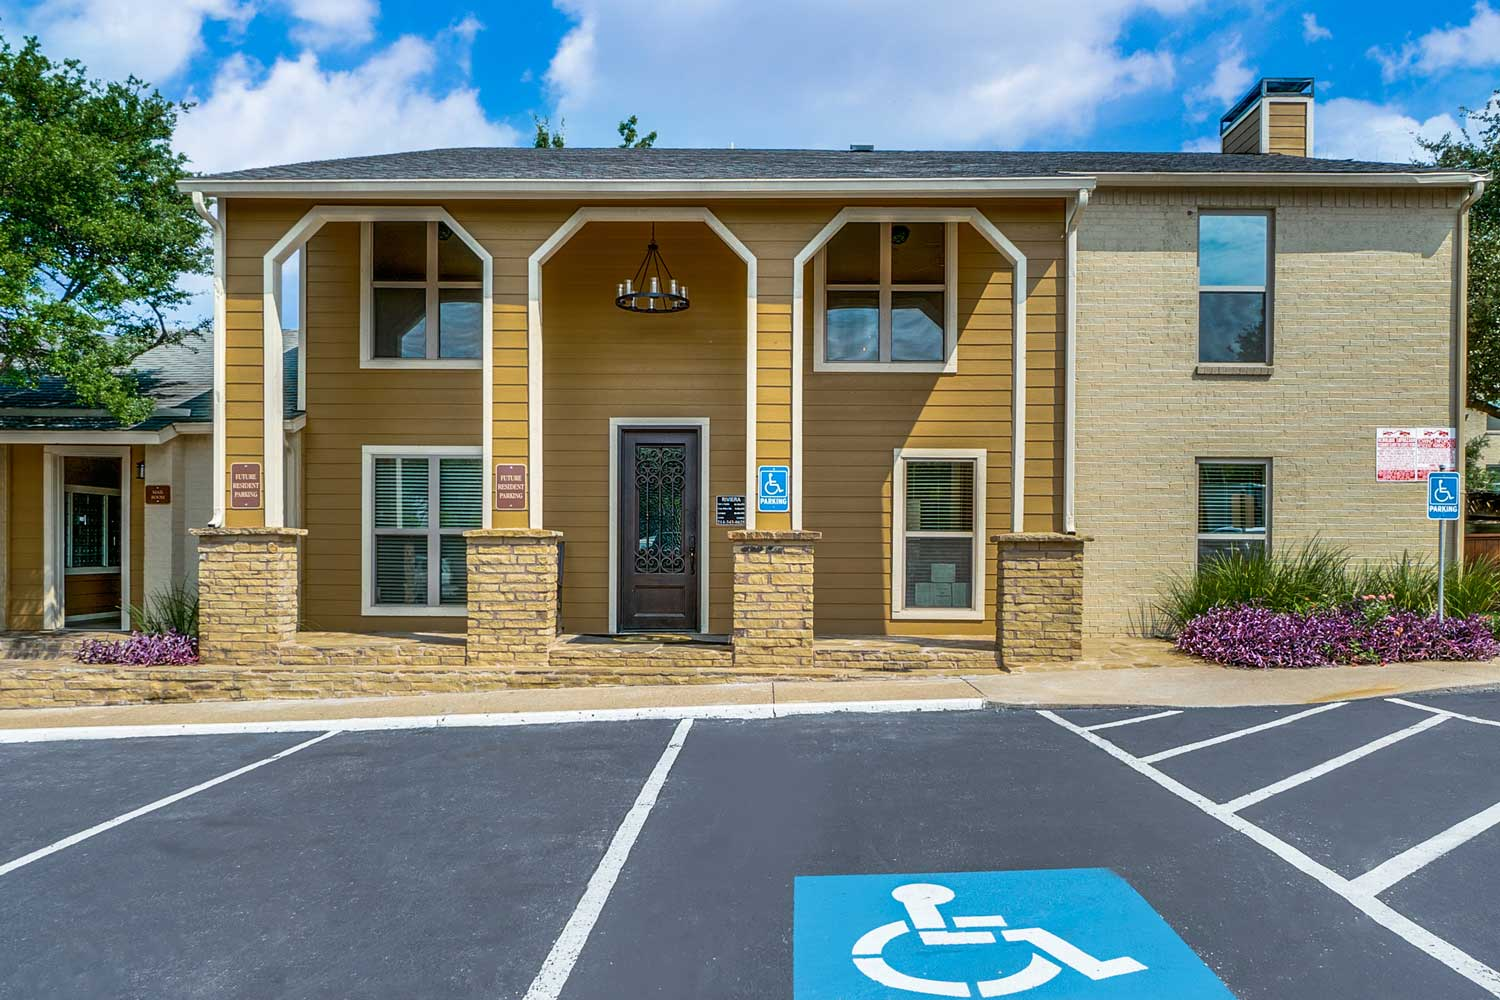 Parking Space at Riviera Apartments in Dallas, Texas